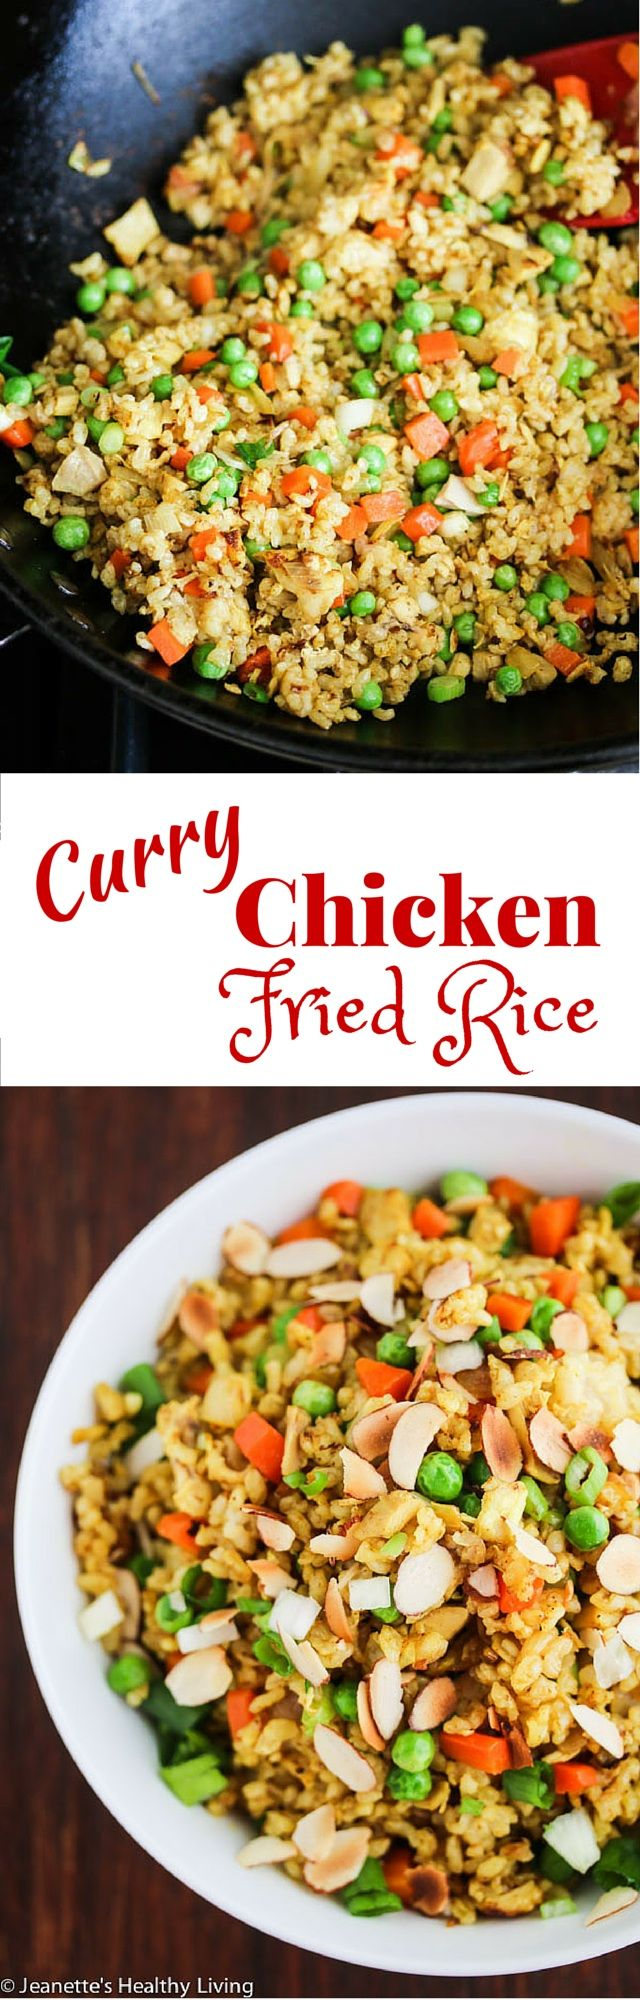 Curry Chicken Fried Rice - a quick, easy and healthy one-pan dinner made with leftover cooked chicken, brown rice, carrots and peas. Toasted almonds make a nice crunchy topping. ~ http://jeanetteshealthyliving.com #fcpinpartners